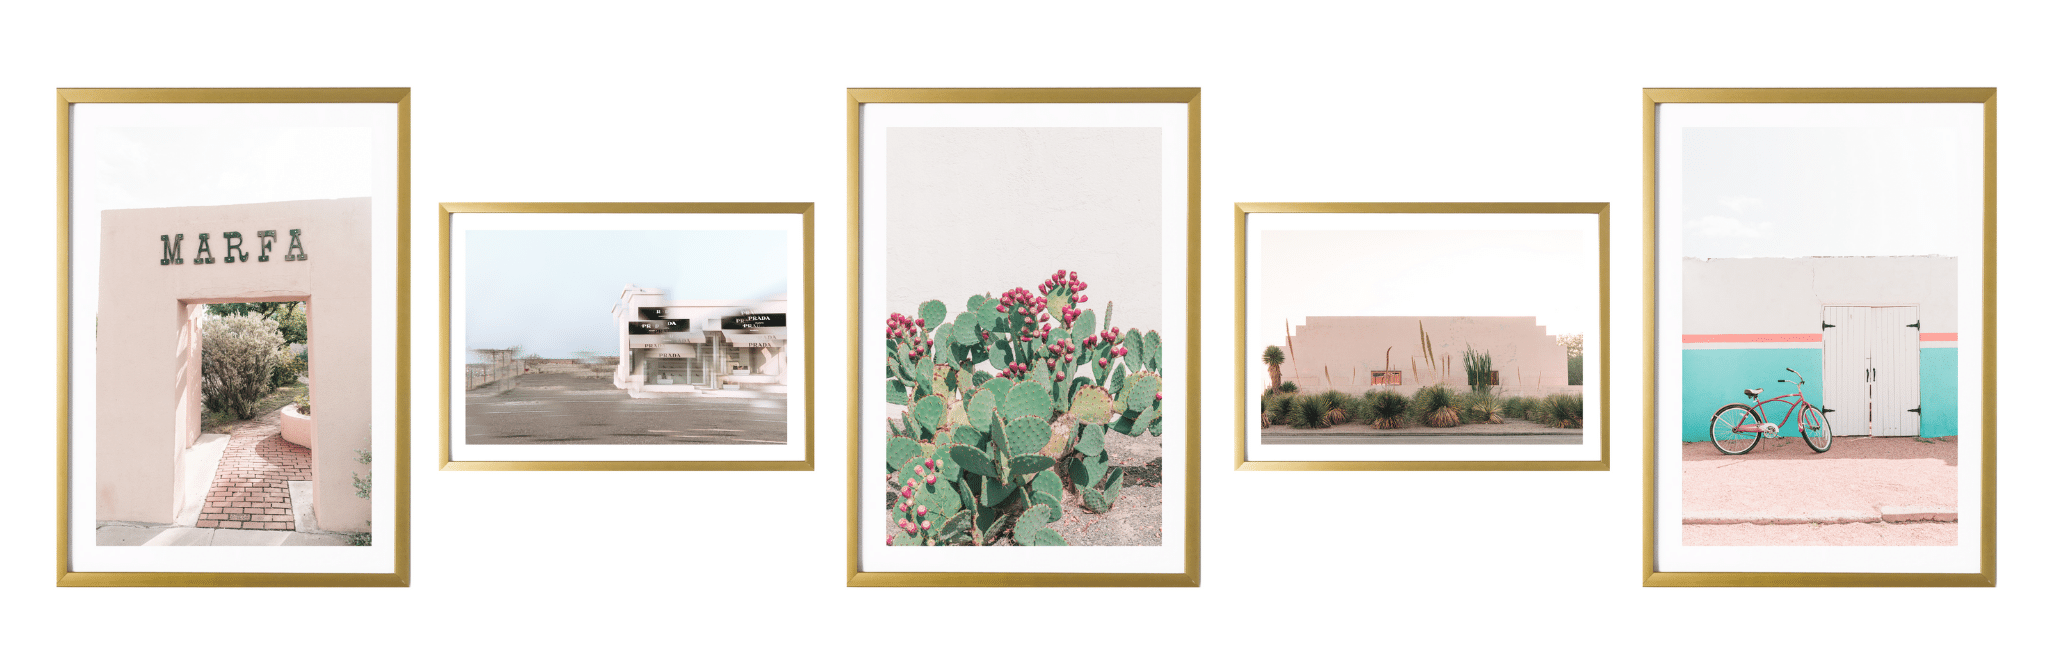 Prada Marfa Art Prints